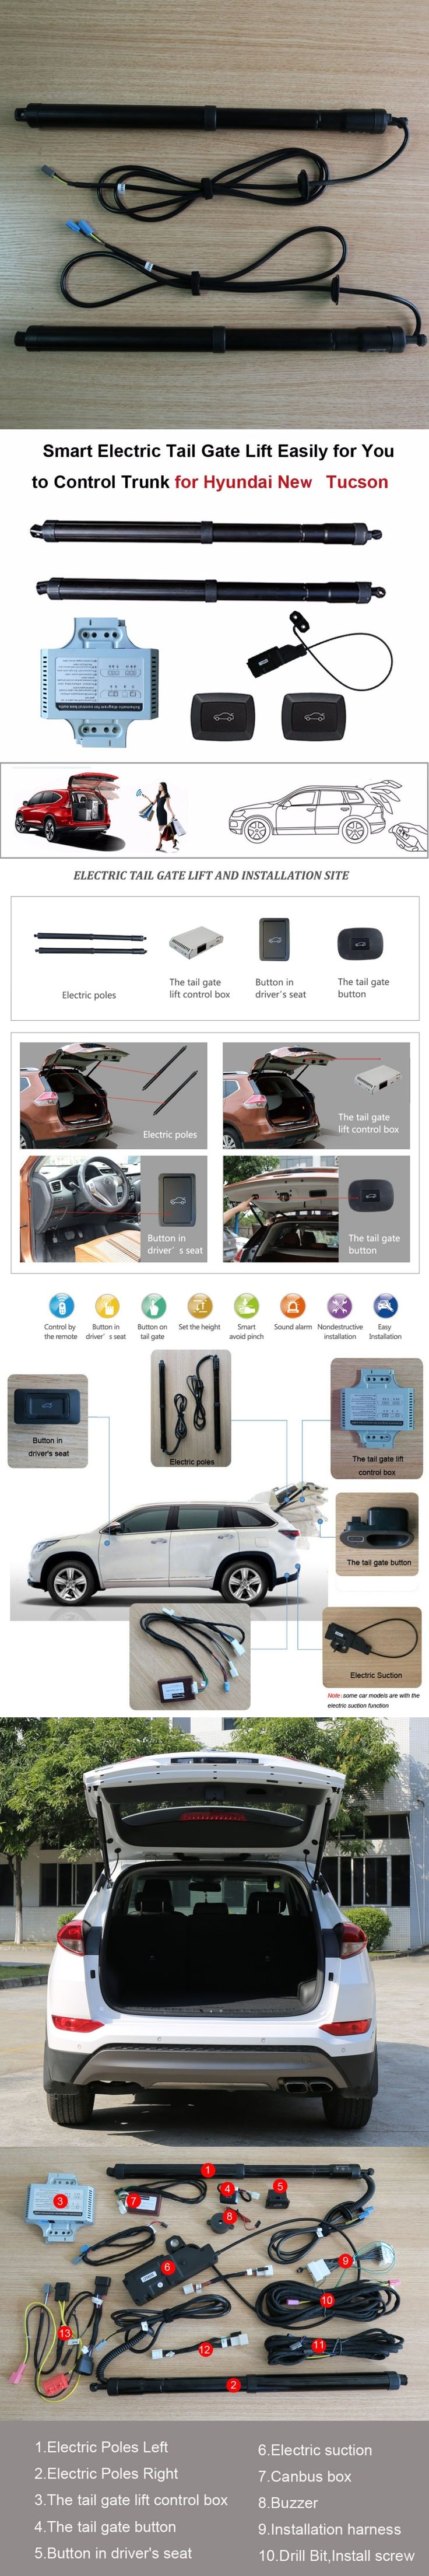 Best 25 control remoto porton electrico ideas on pinterest smart auto electric tail gate lift for hyundai new tucson remote control set height avoid pinch rubansaba